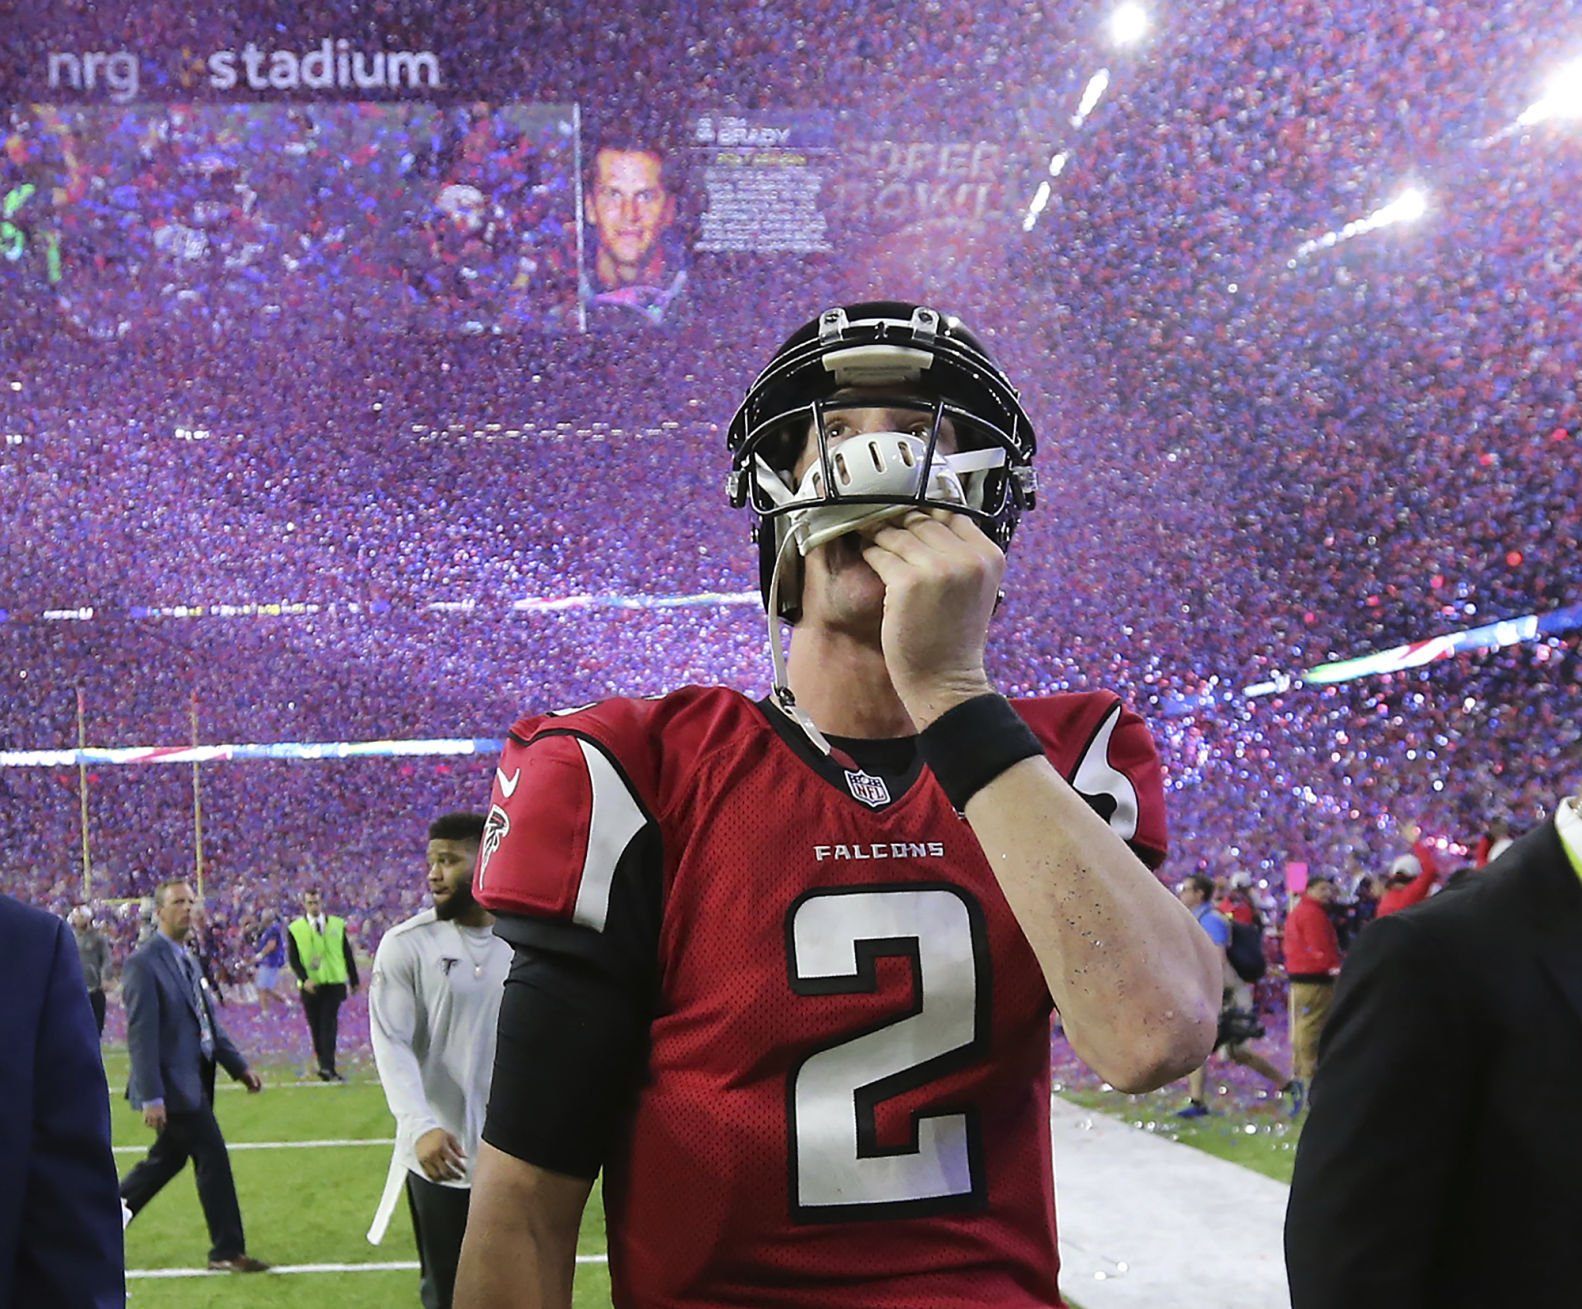 Super Bowl reminders abound ahead of Pats Falcons rematch